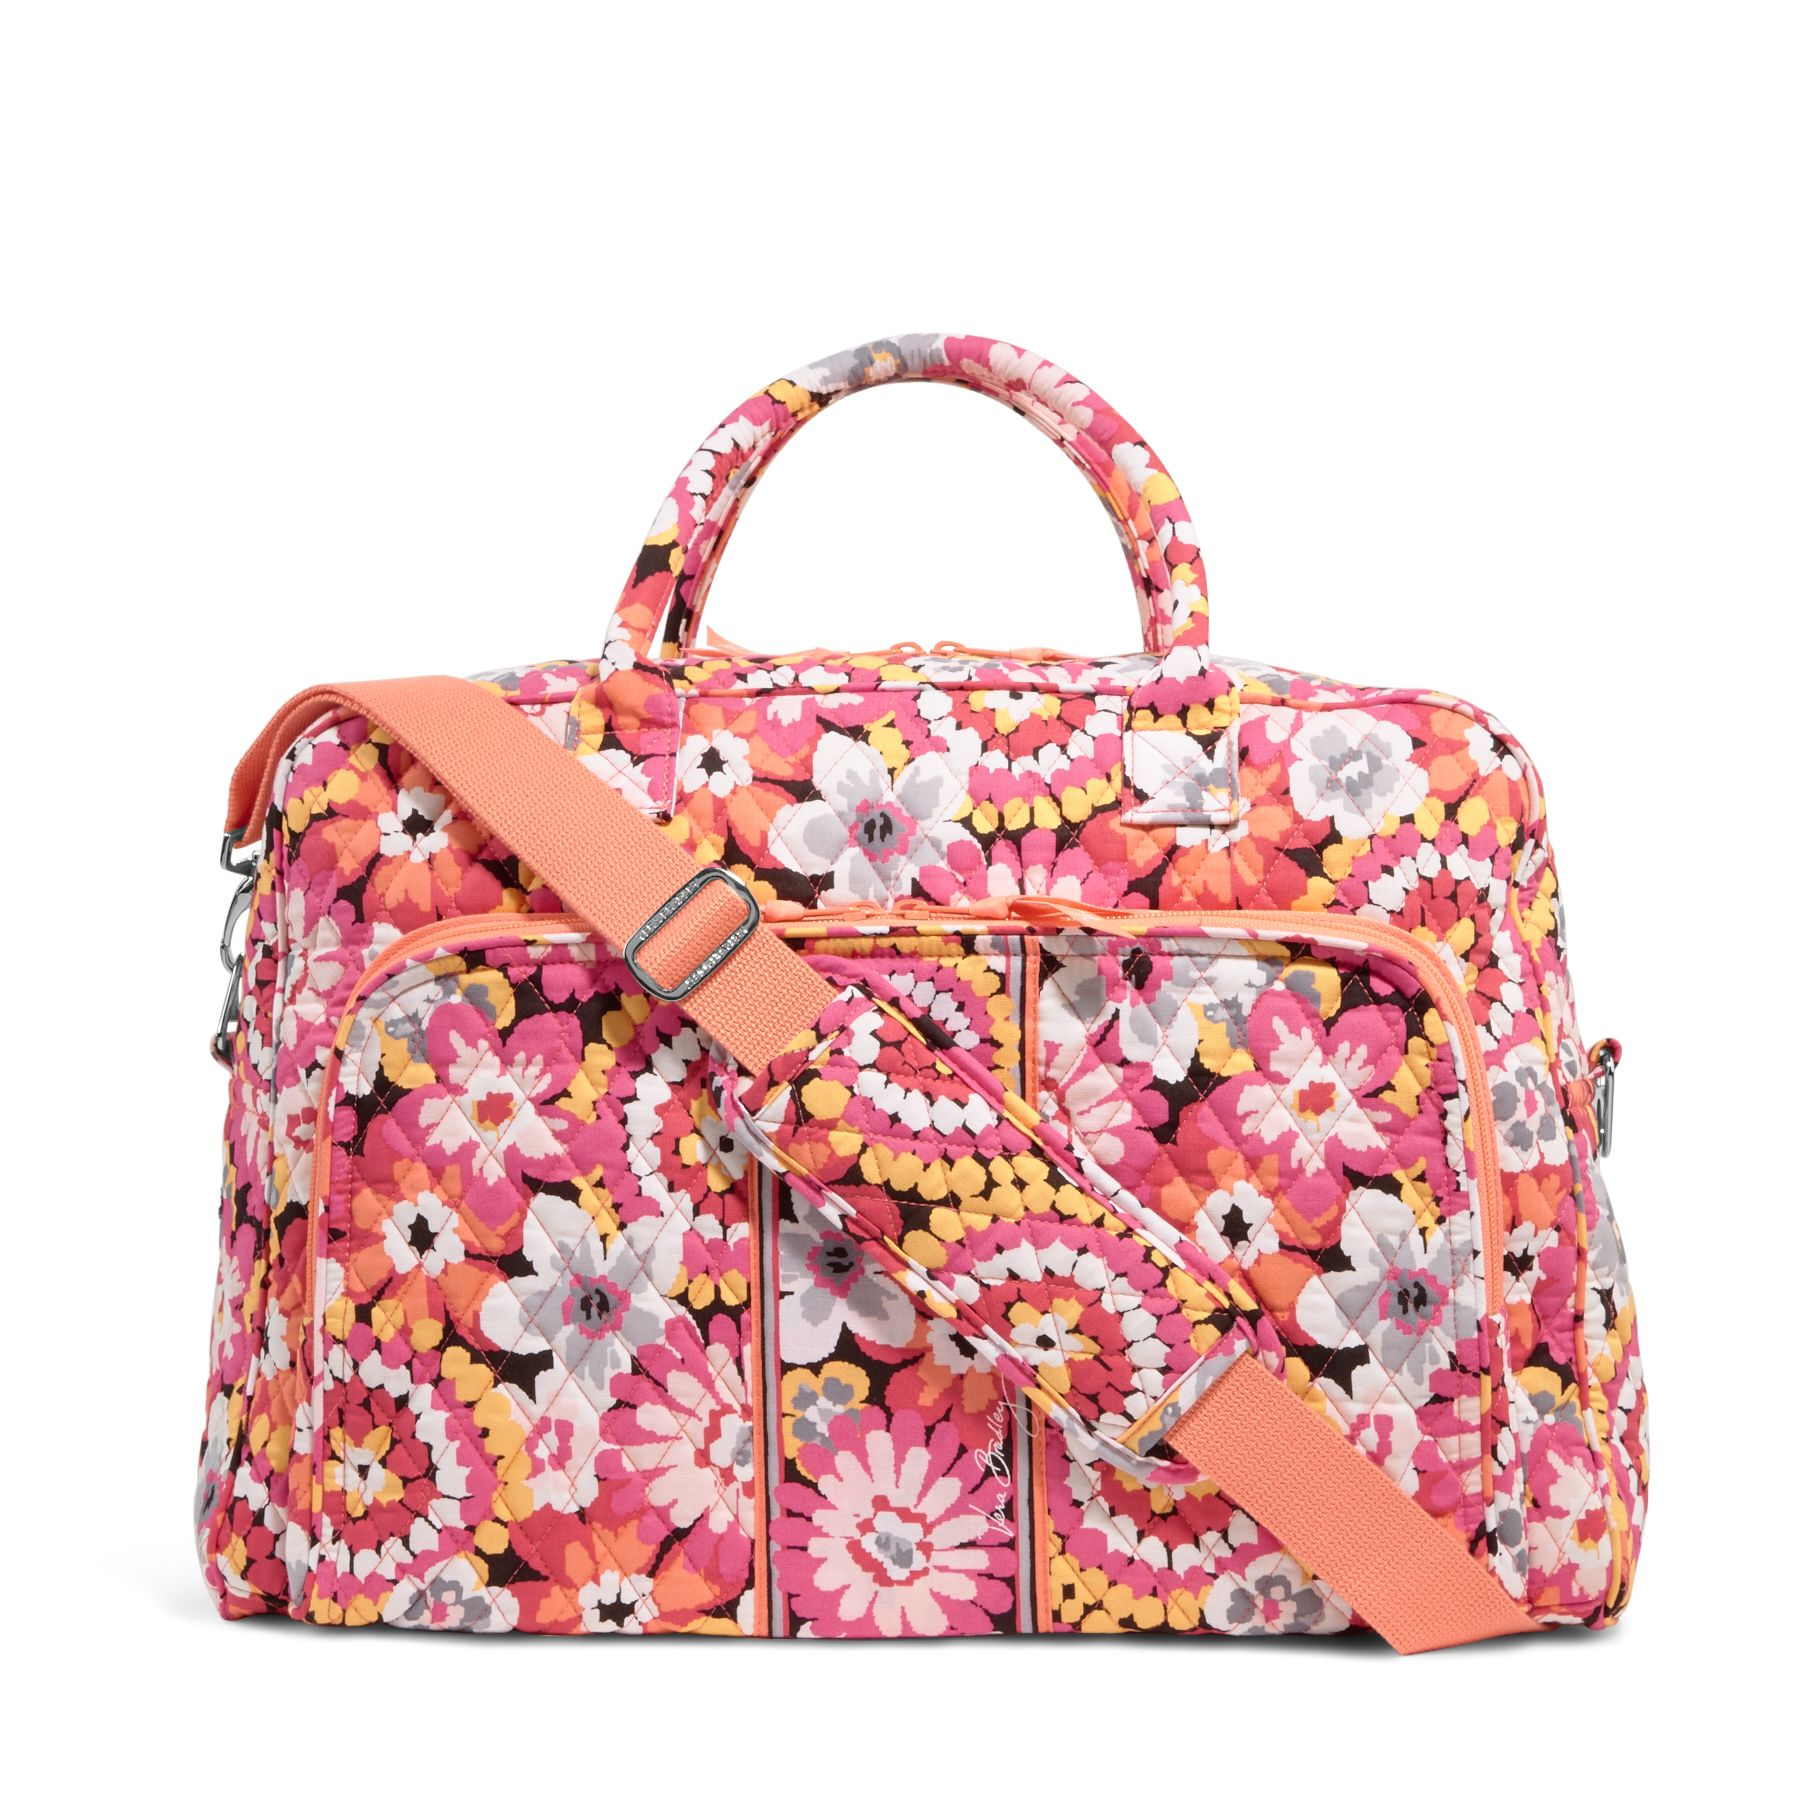 Feminine totes, duffels, purses, wallets, and more are available for less with Vera Bradley coupons. The company – launched by two friends in – supplies quilted cotton bags in eye-catching prints to more than 3, authorized retailers in the United States and Canada, as well as at manualaustinnk4.gq